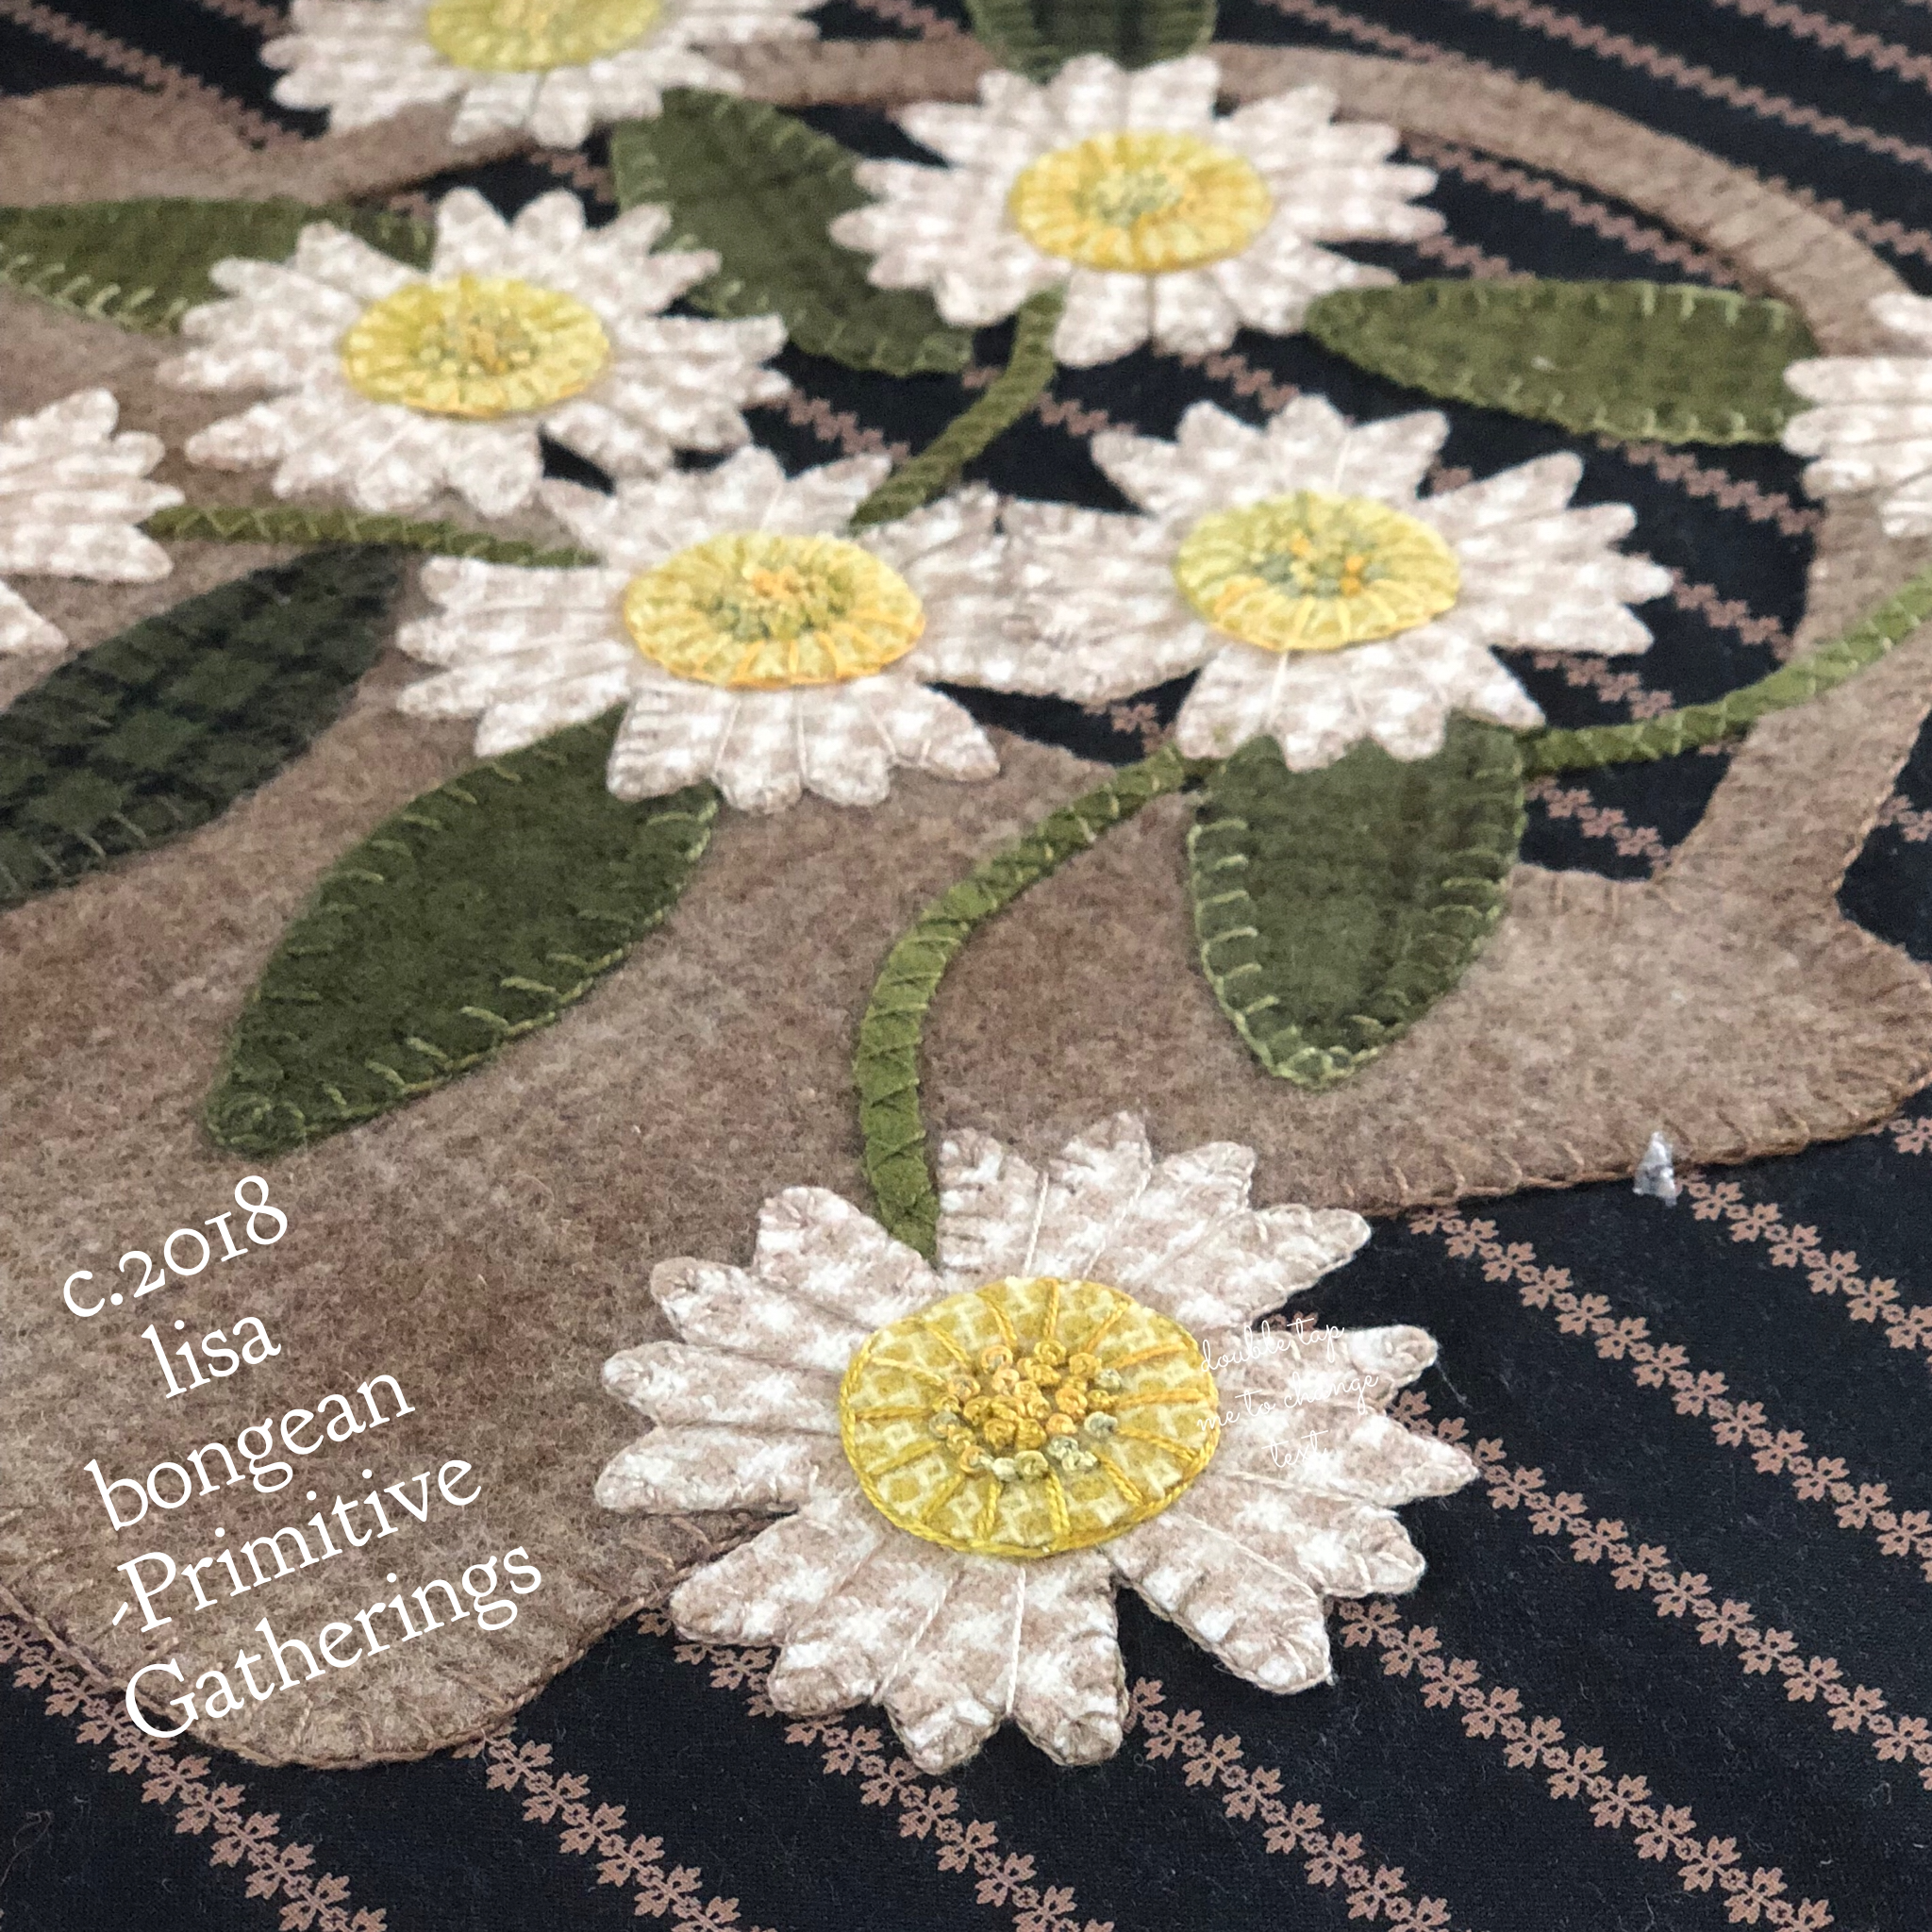 ... Not Stitch A Moon Garden As Wellu2026.lots Of Light Colored Blooms On A  Dark Backgrounds. The Backgrounds I Am Using Come From The Black Prints Of  Little ...